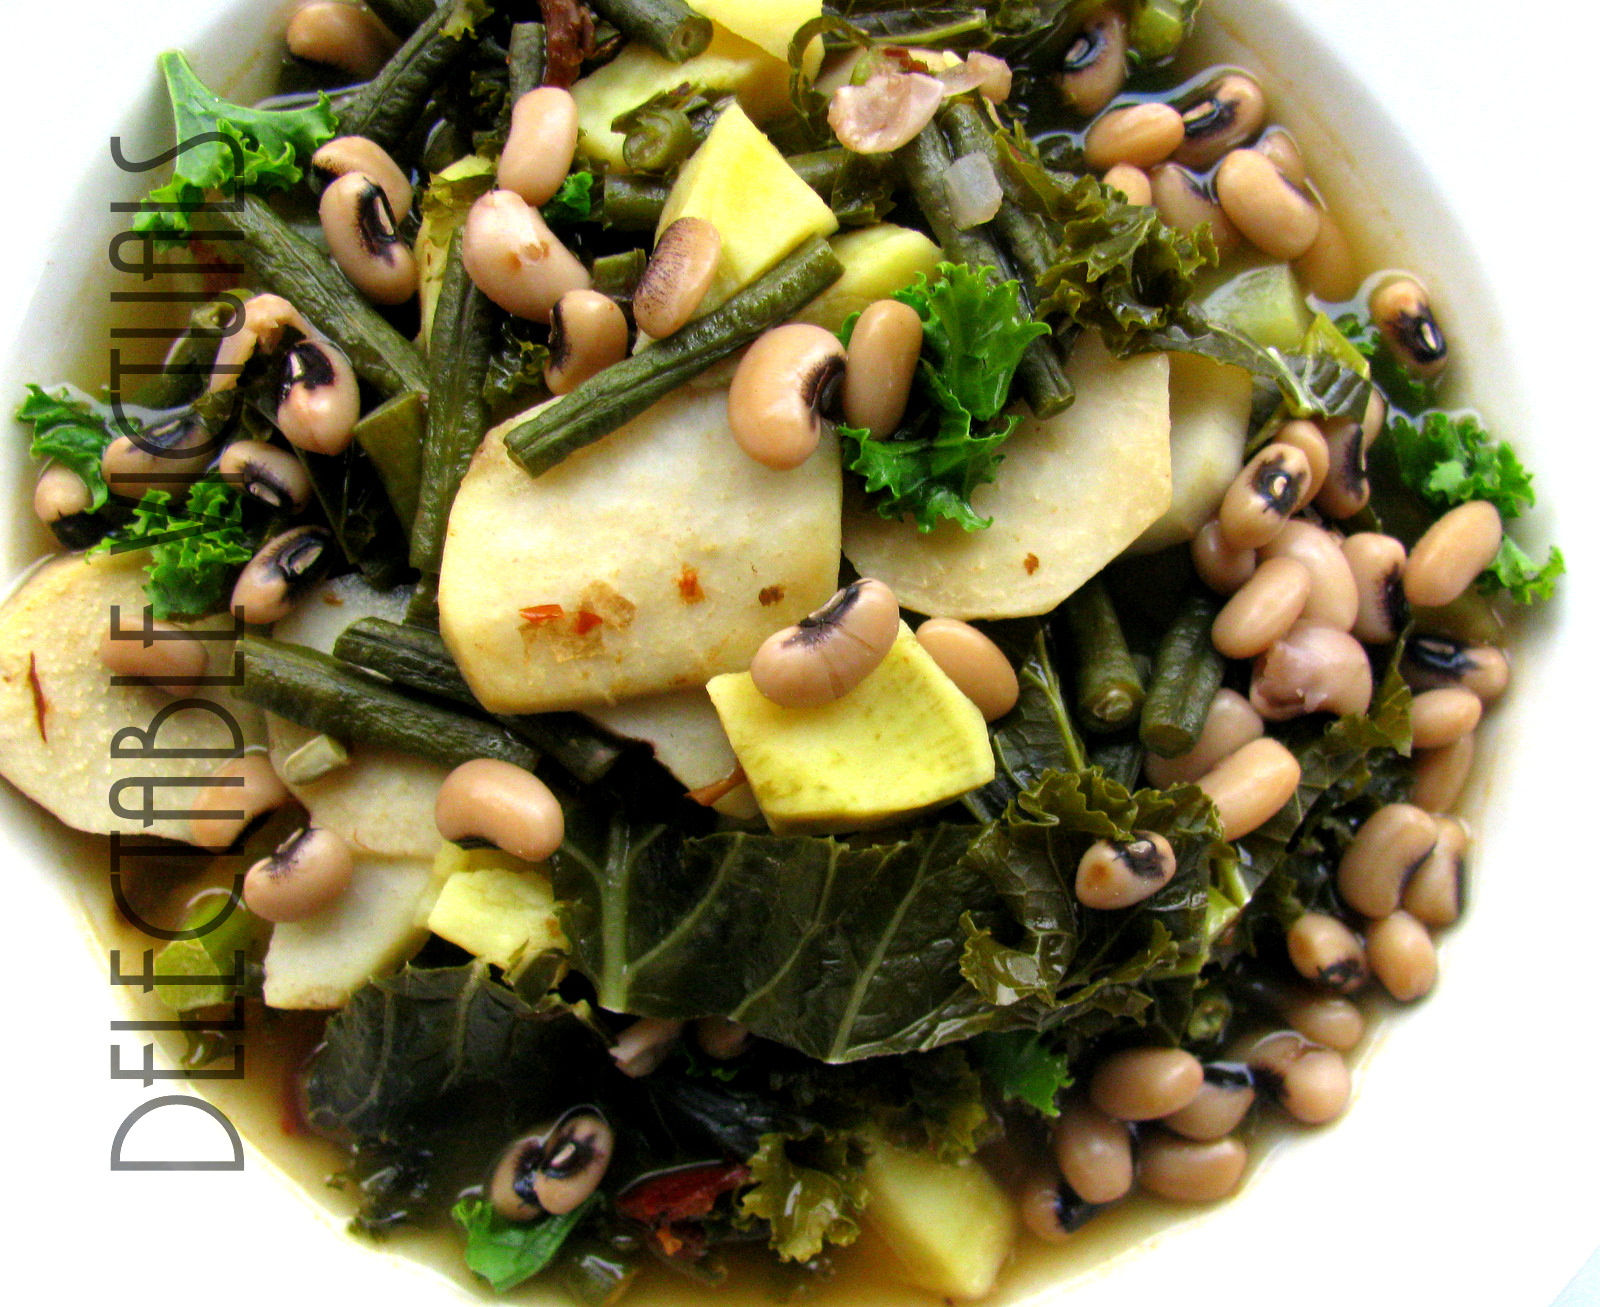 Delectable Victuals Chipotle Sweet Potato Taro Root Kale Chayote Navy Squash Long Green Beans Soup